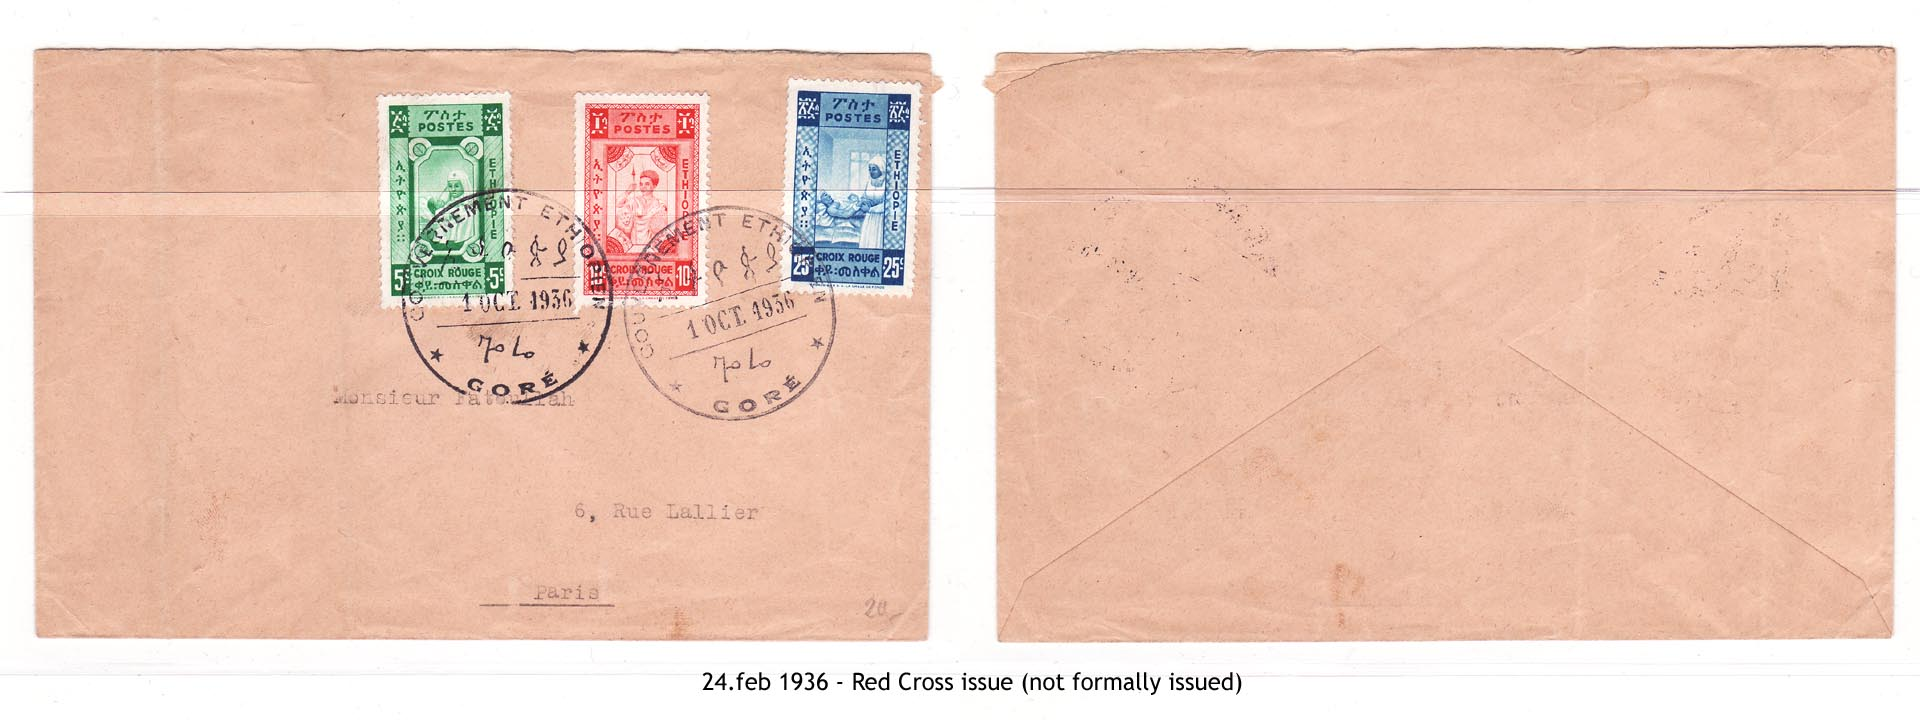 19360501 - Red Cross issue